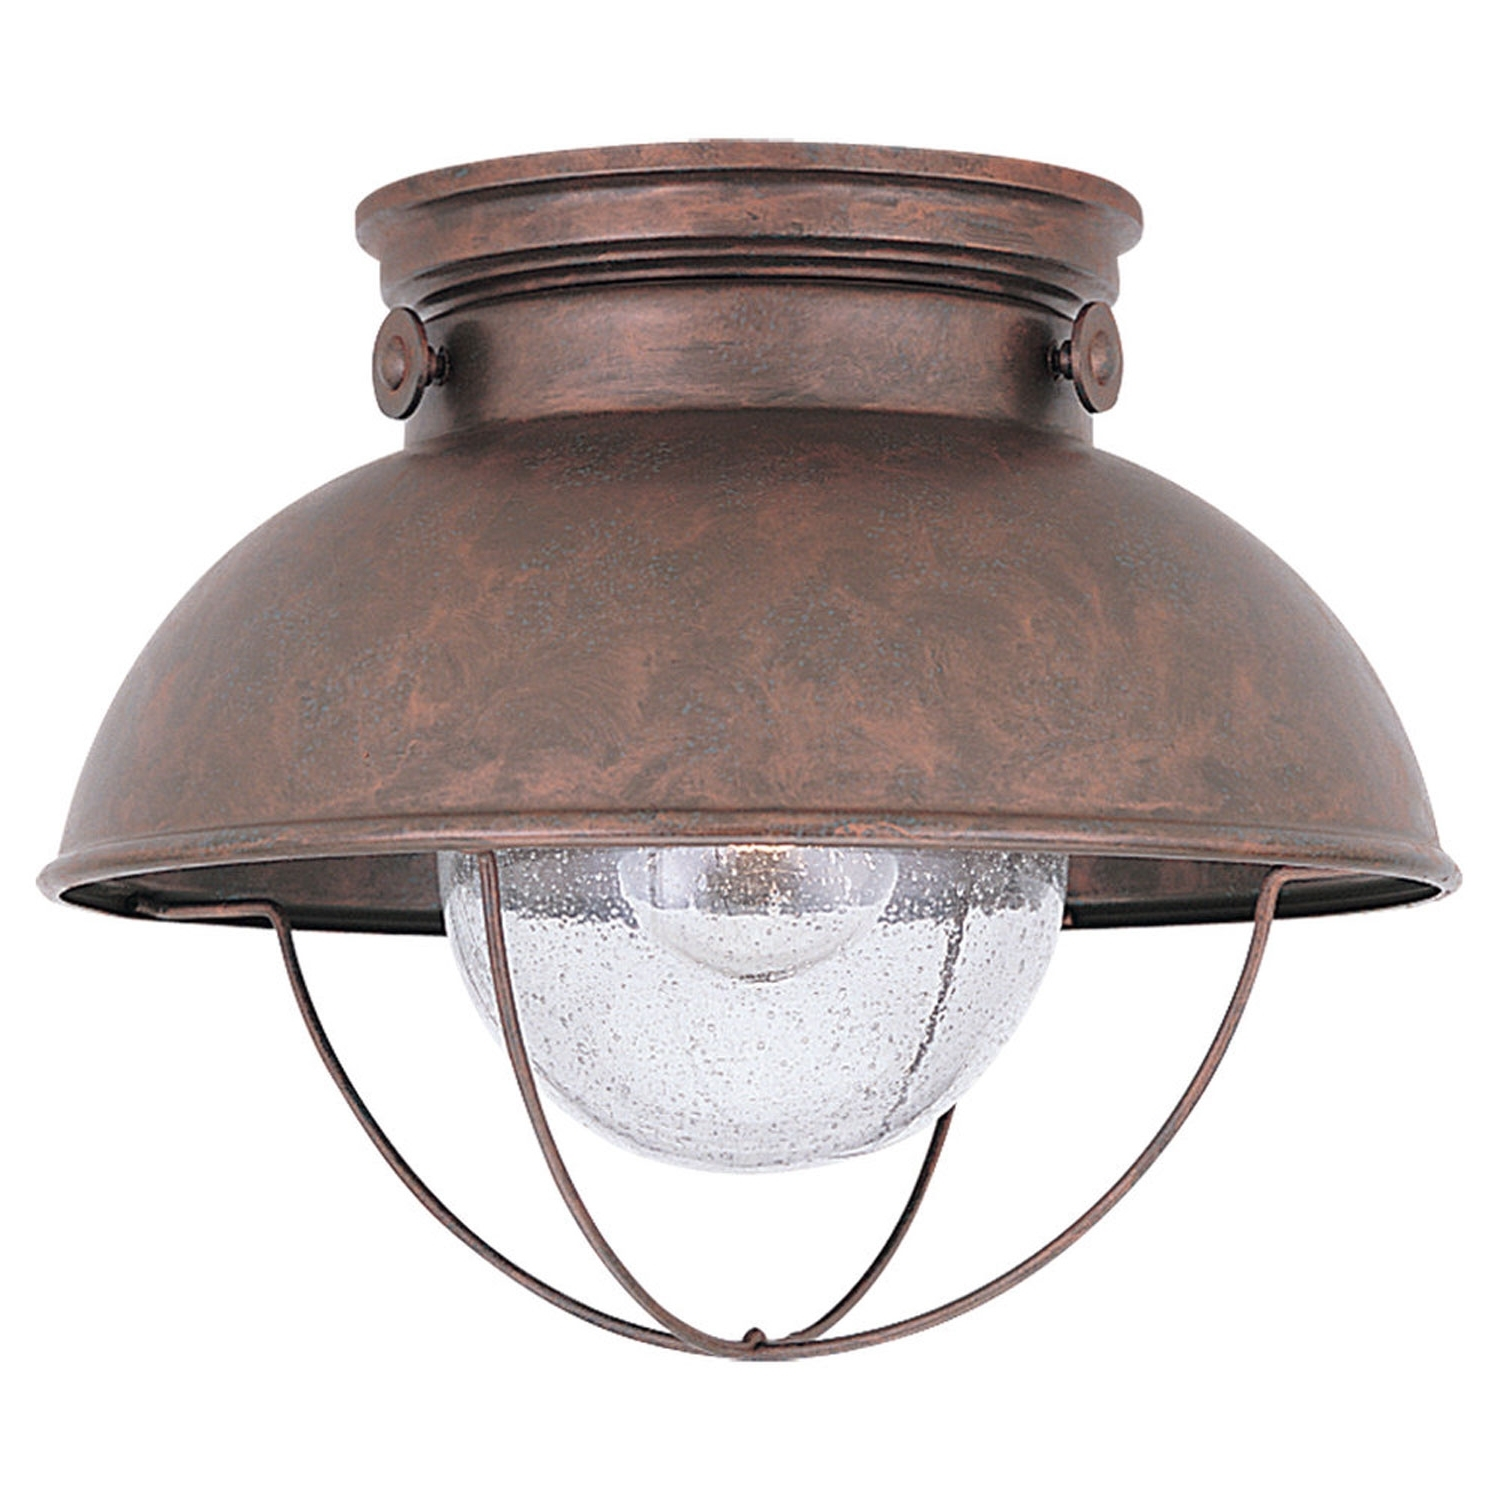 Exterior Light Fixtures In Bronze, Copper In Well Known Decorative Outdoor Ceiling Lights (View 9 of 20)